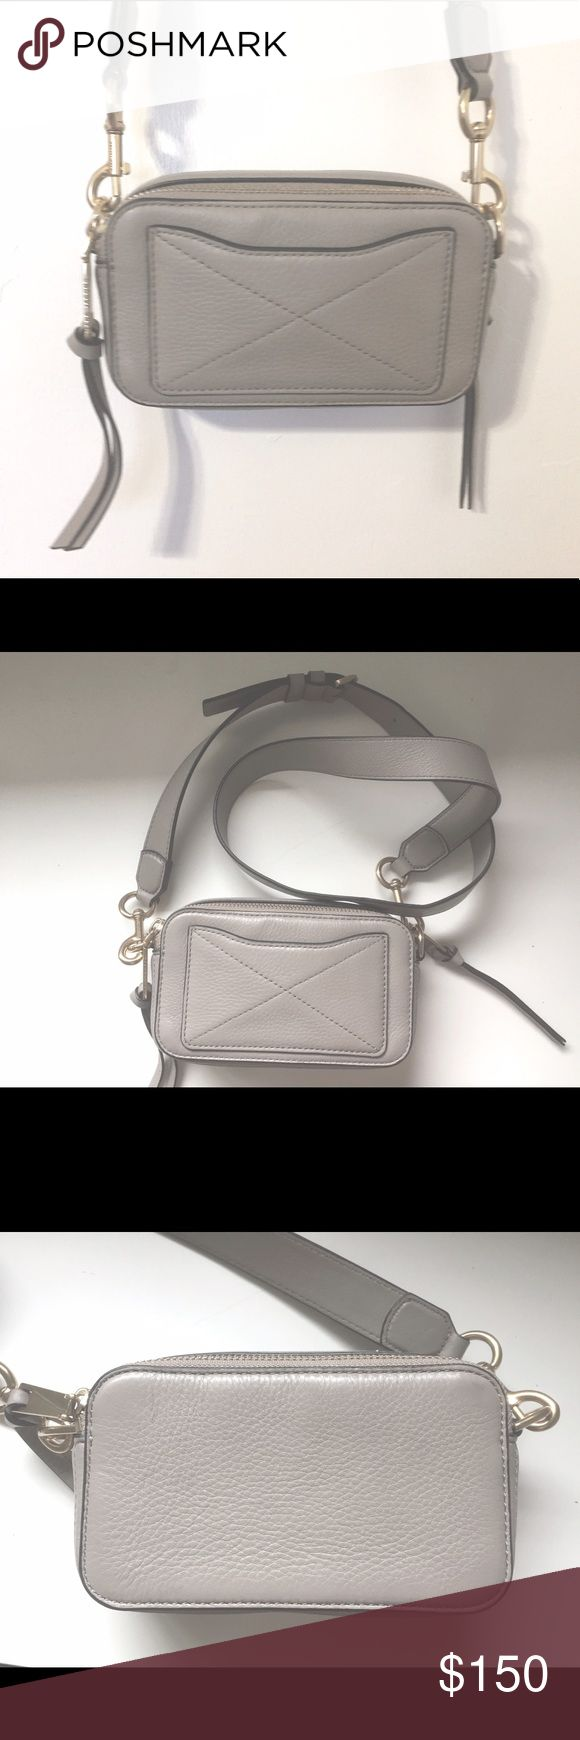 Marc jacobs crossbody purse Used several times🌸 still in great condition ❤️ 100% authentic Marc jacobs purse 👌 Marc Jacobs Bags Crossbody Bags